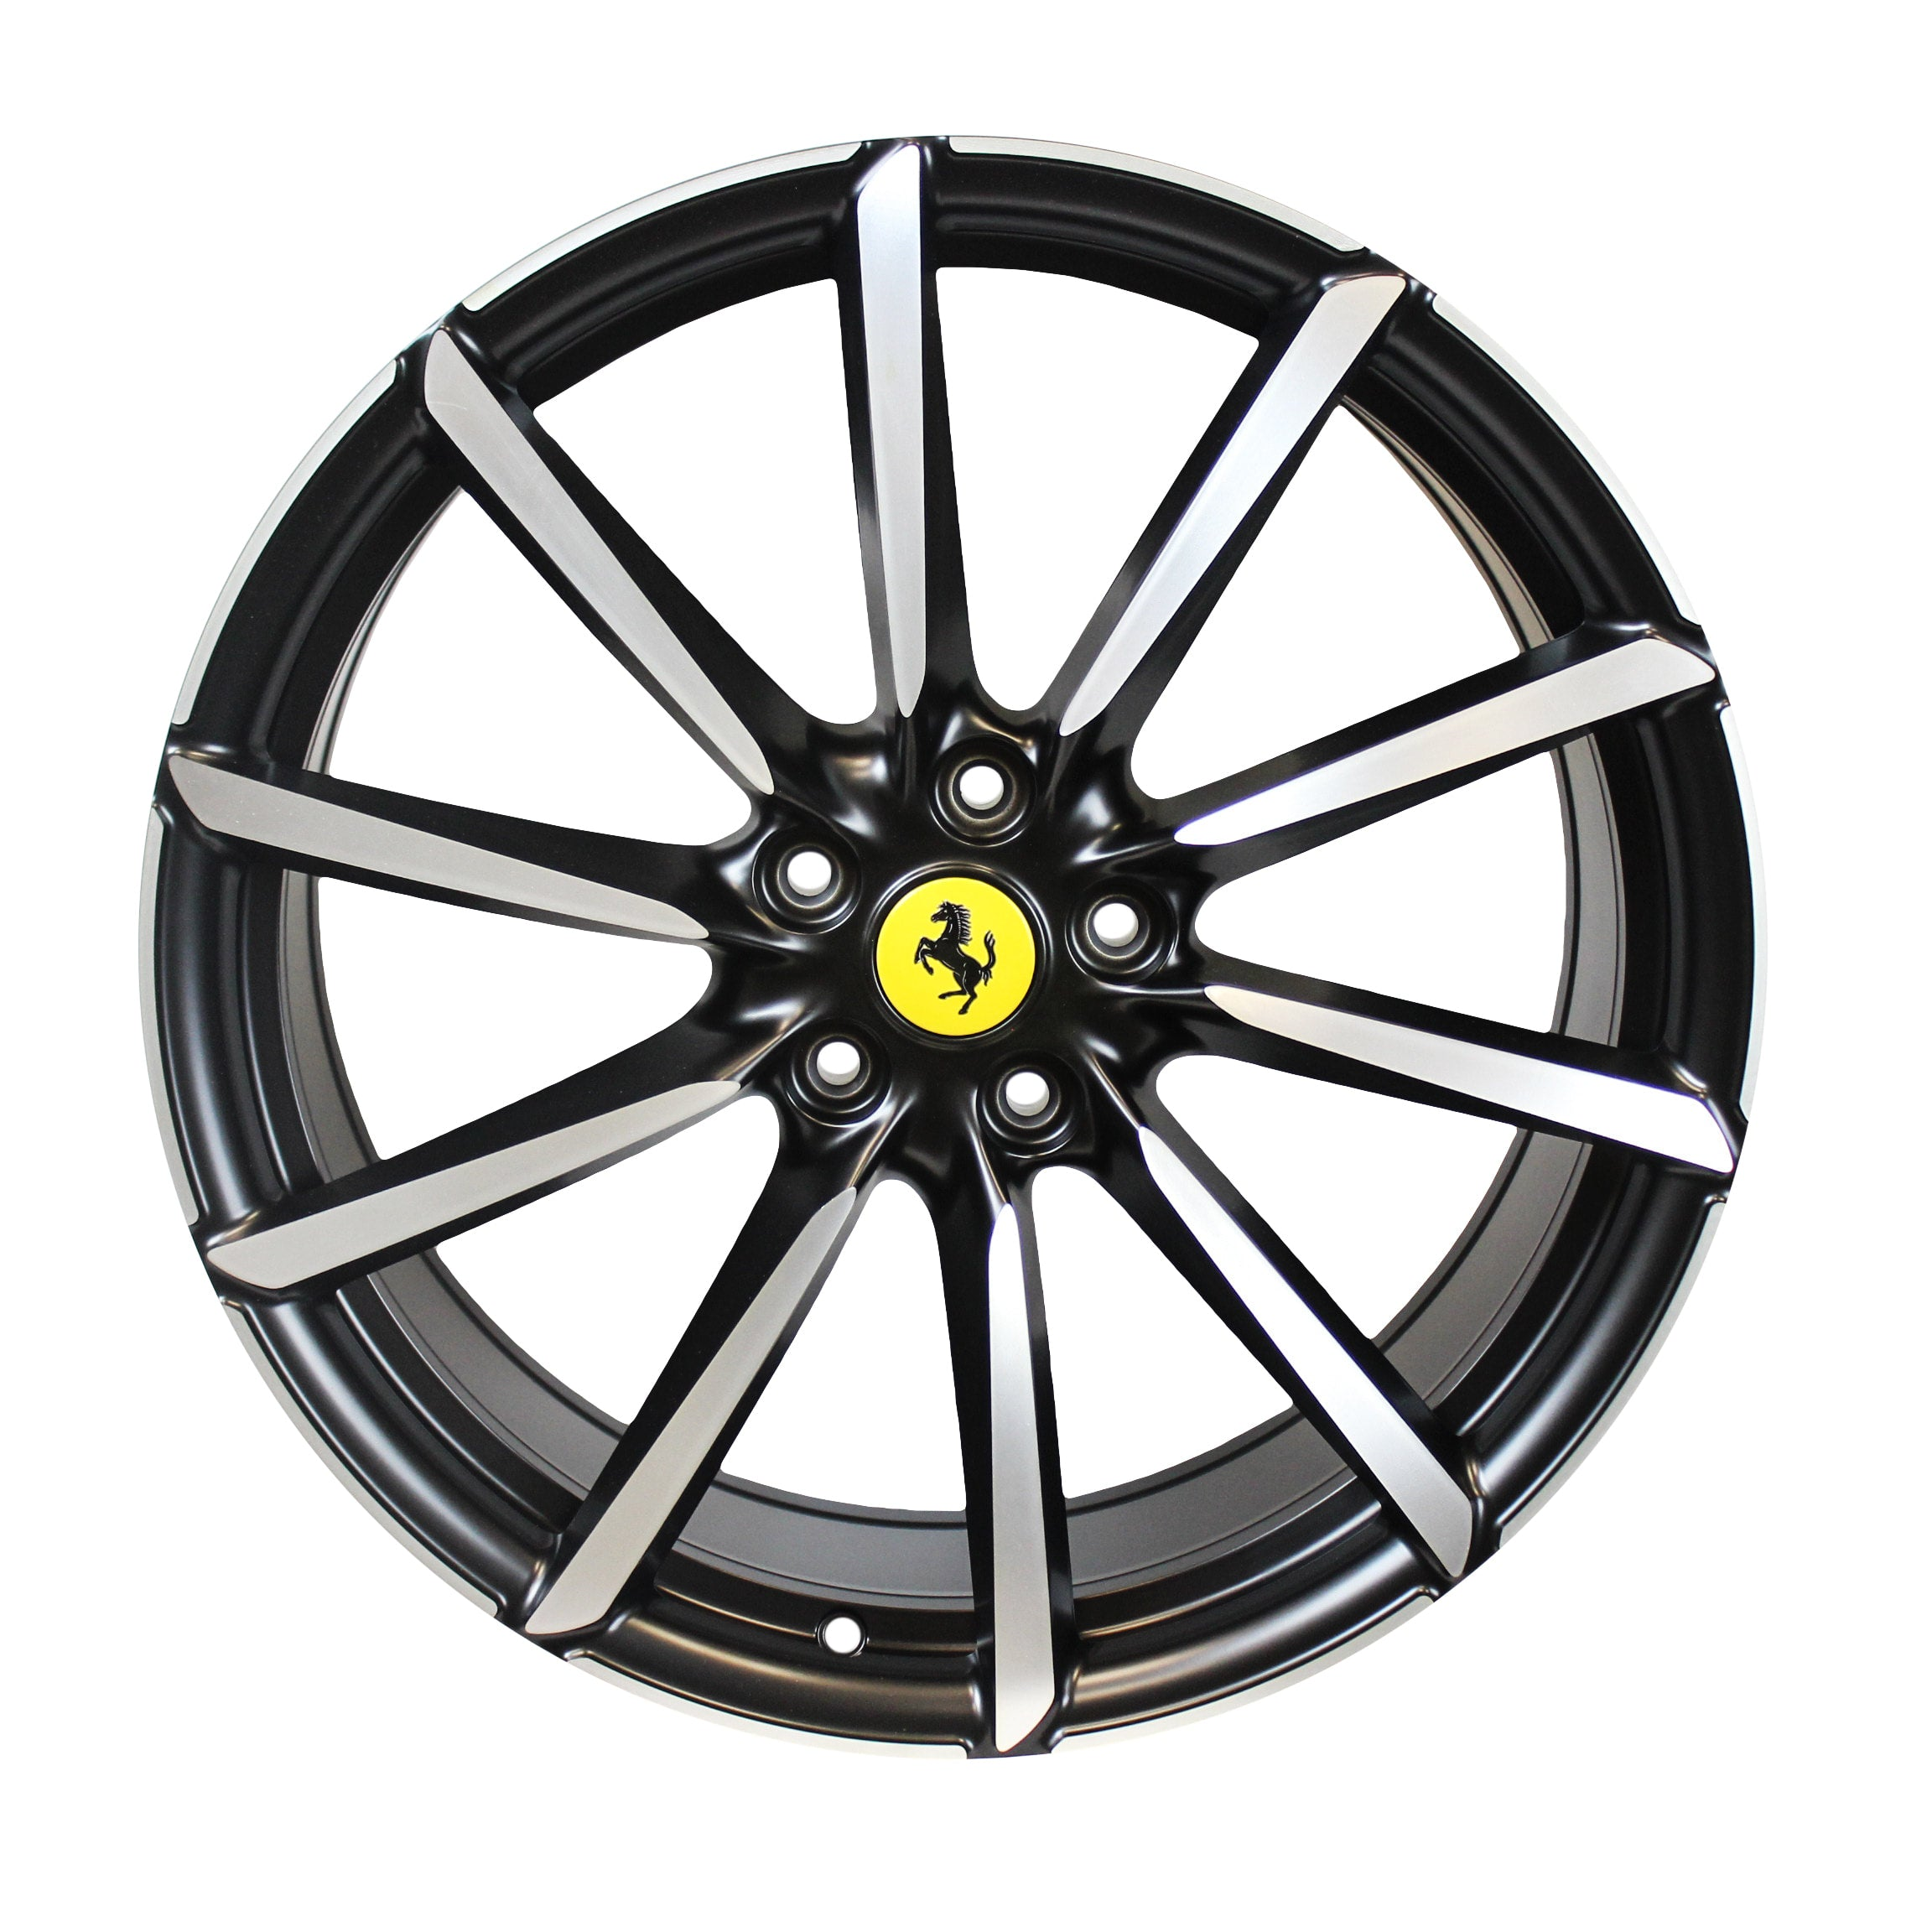 Ferrari F12Berlinetta Wheels 2012-2016